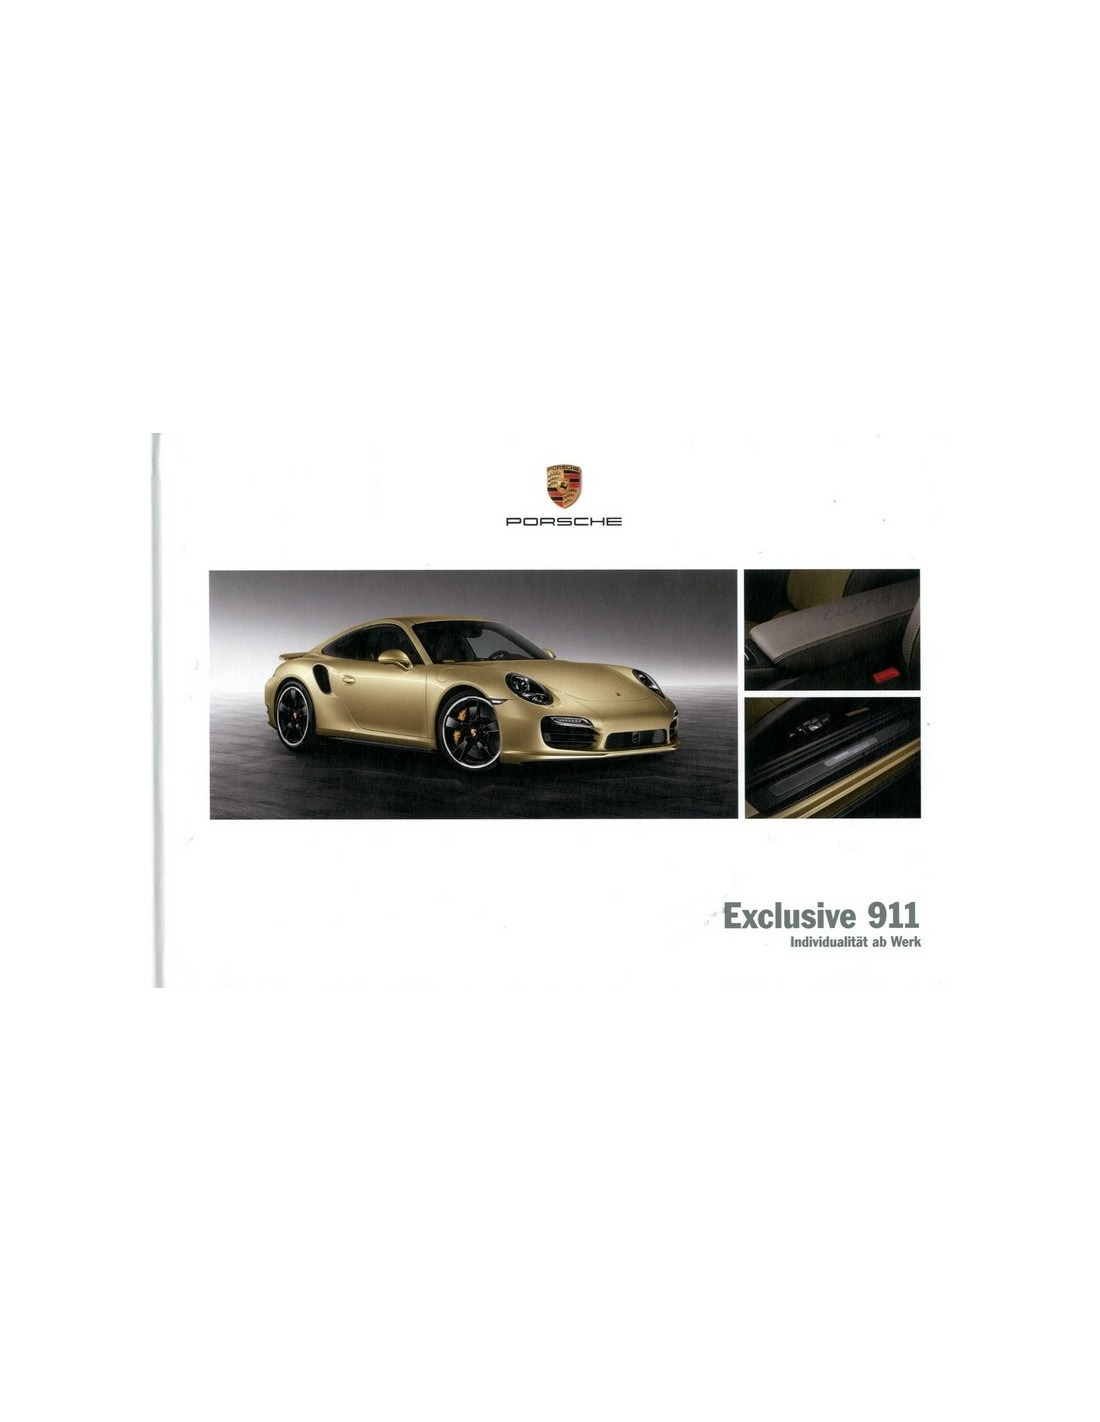 2013 Porsche 911 Carrera Exclusive Hardcover Brochure Duits